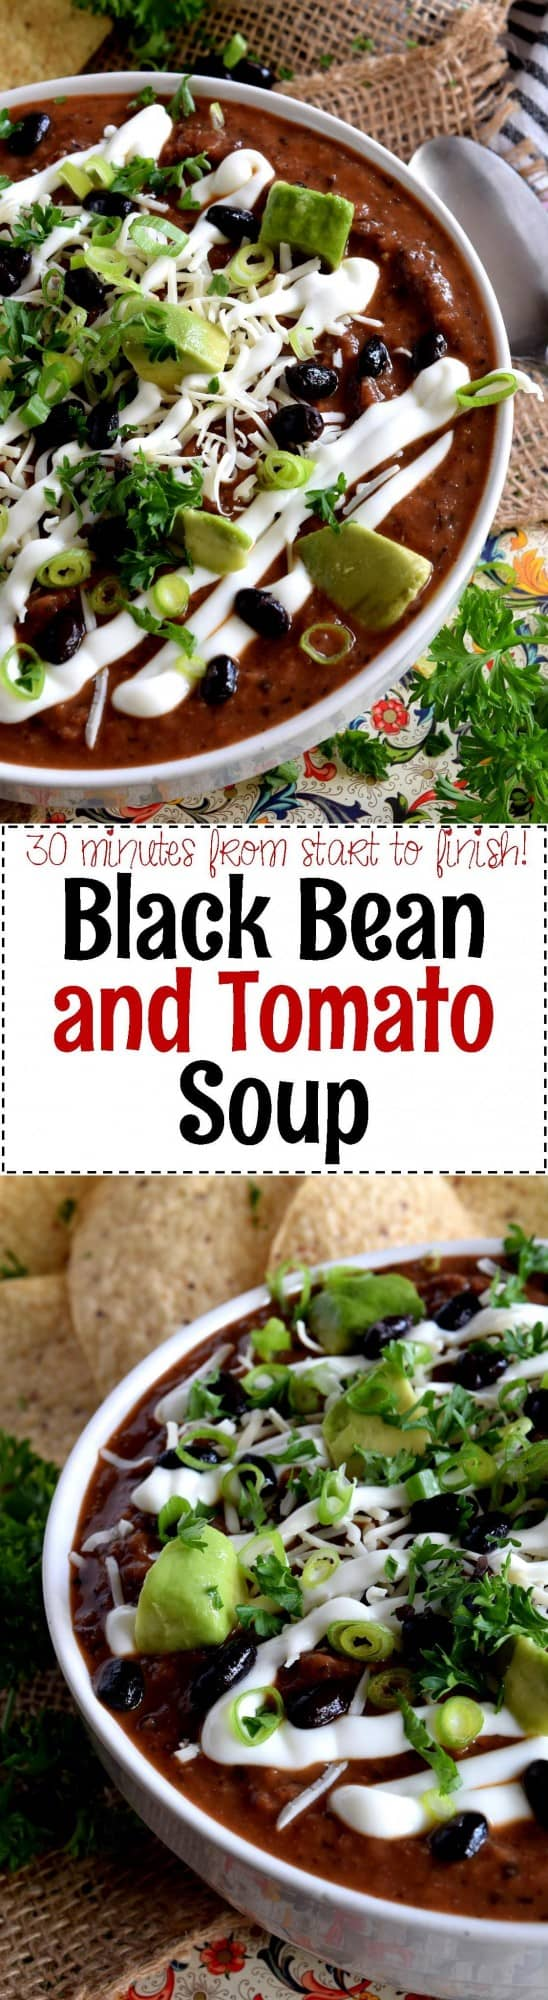 30 Minute Black Bean and Tomato Soup - Lord Byron's Kitchen